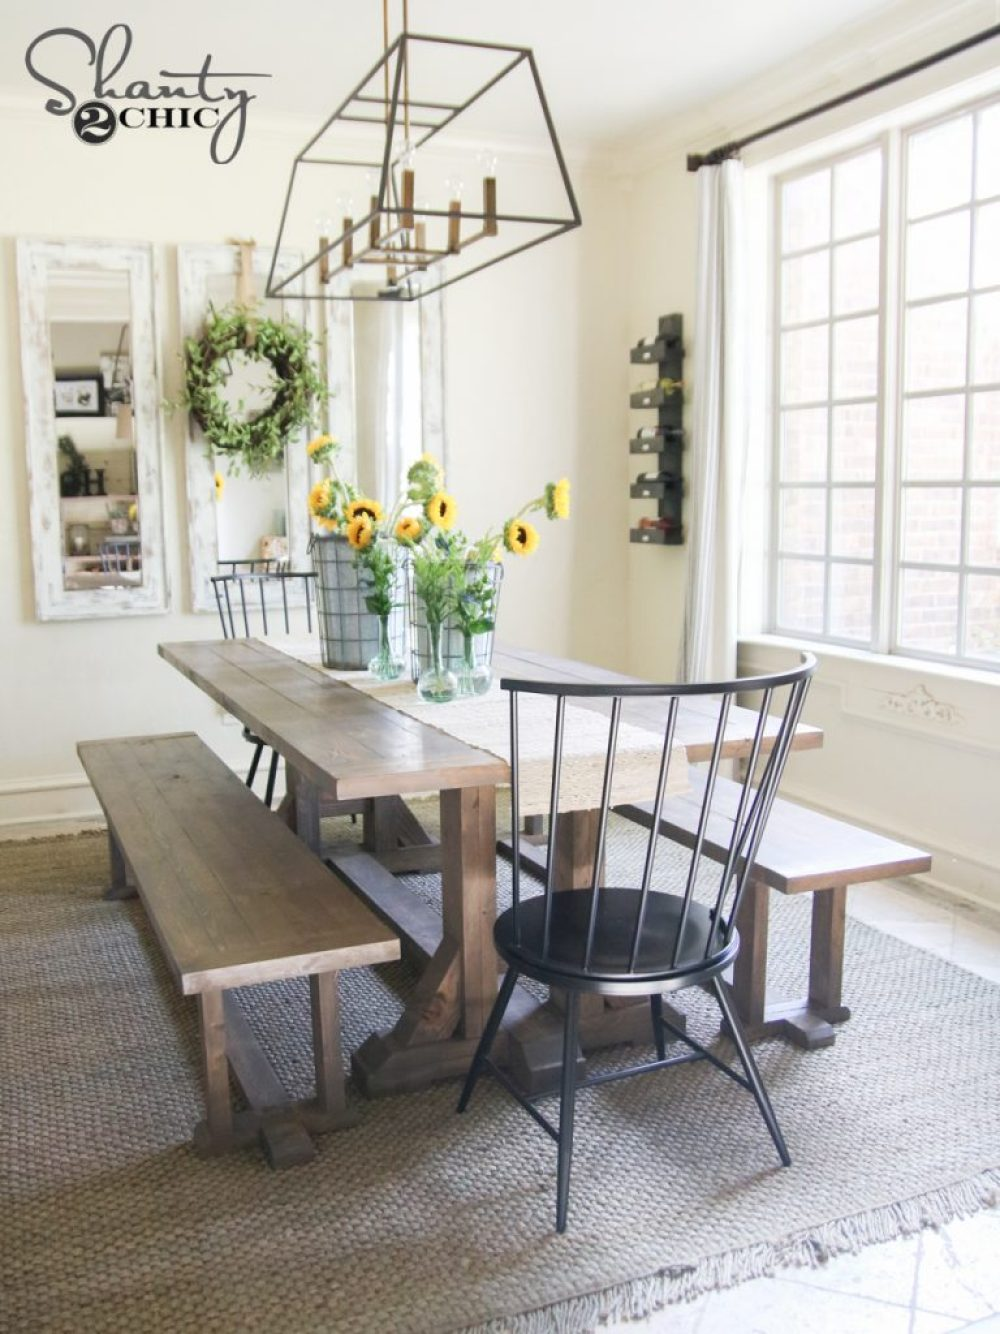 Free Furniture Plans DIY Farmhouse Dining Table by Shanty2Chic